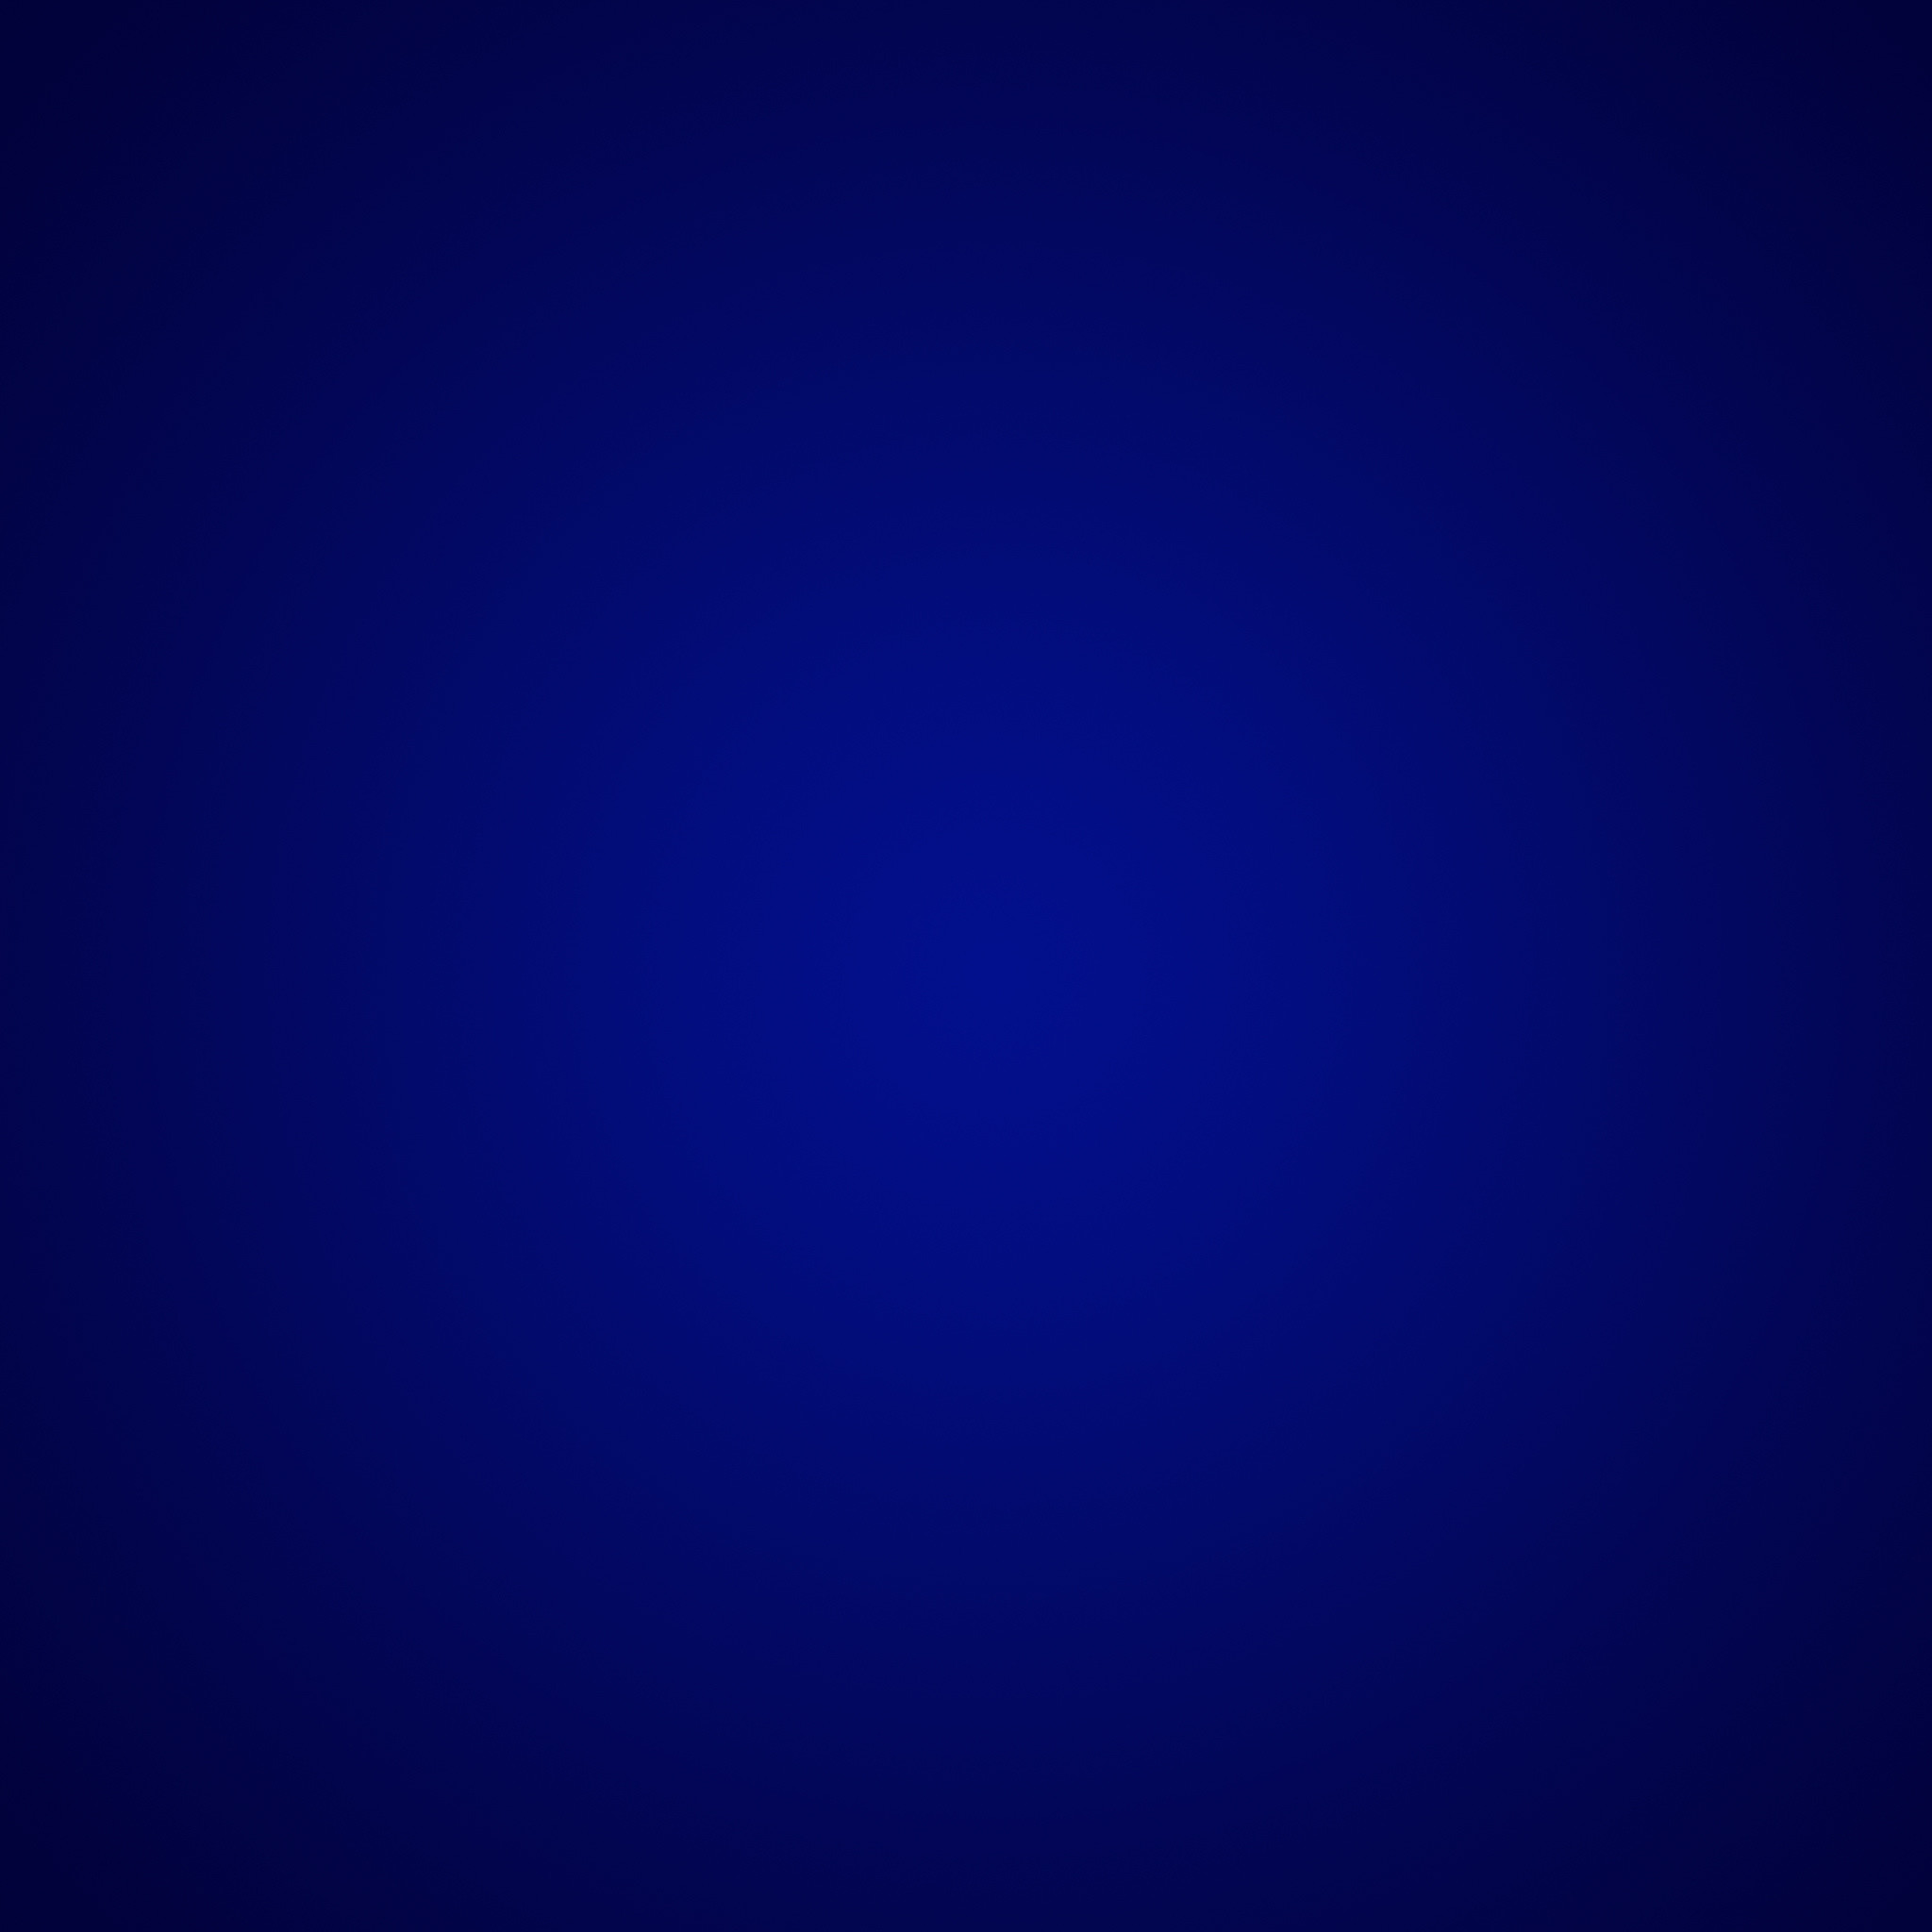 Dark Blue Wallpapers 77 Images